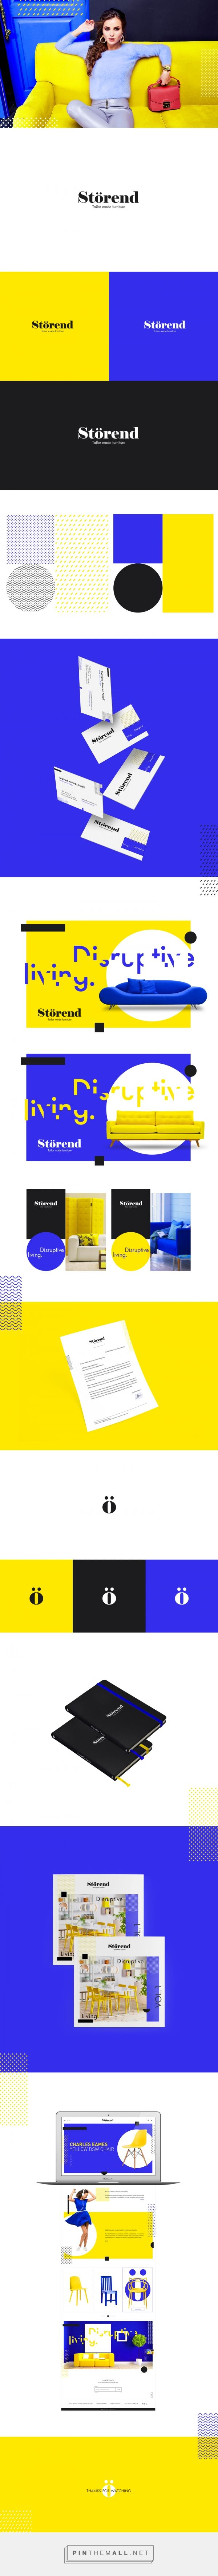 Storend Branding on Behance - created via https://pinthemall.net